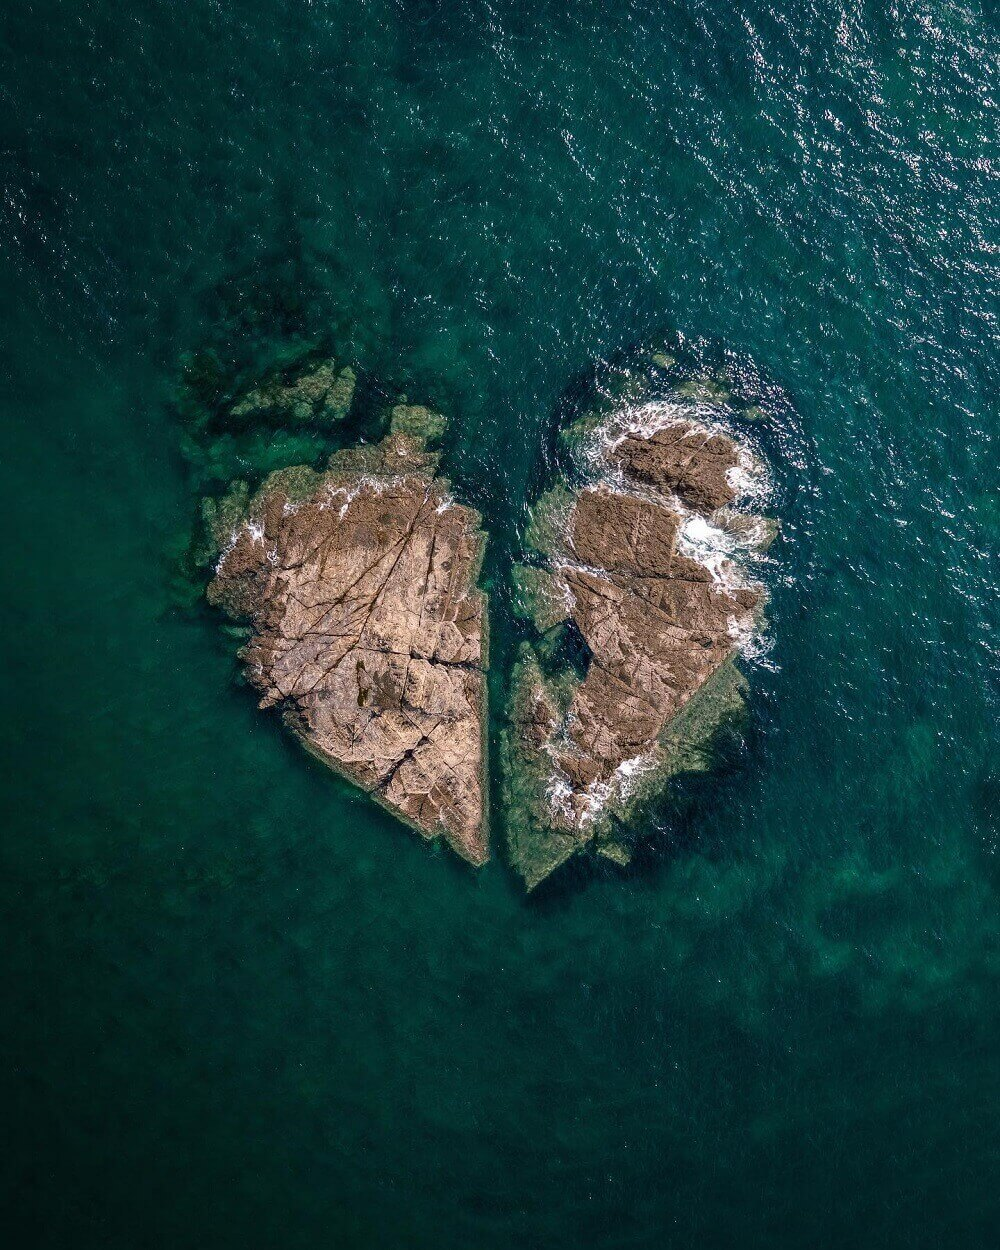 aerial photograph of a a heart-shaped island